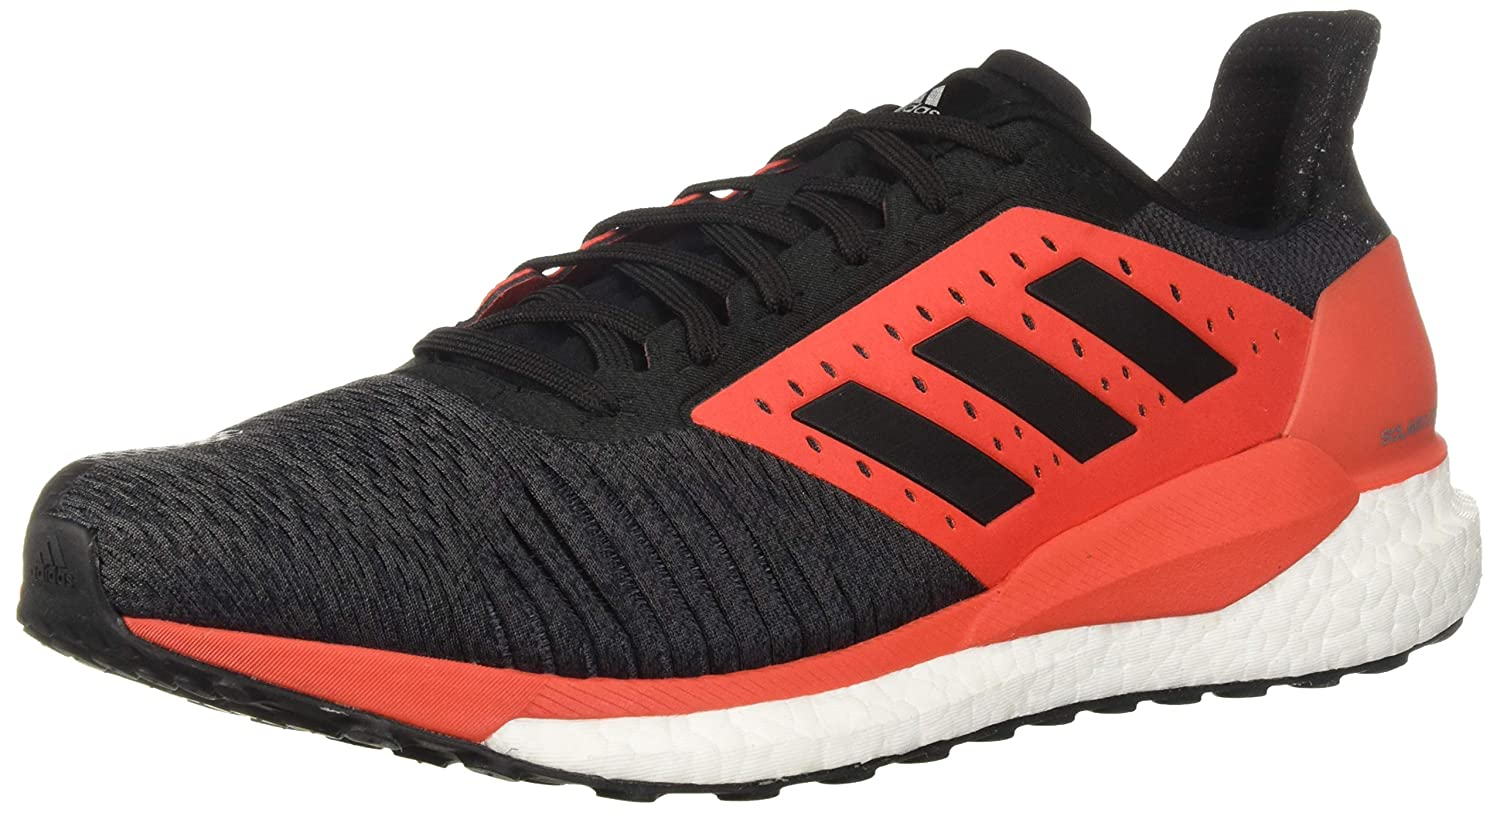 brand new 9412d d21eb Amazon.com   adidas Originals Men s Solar Glide St Running Shoe   Road  Running